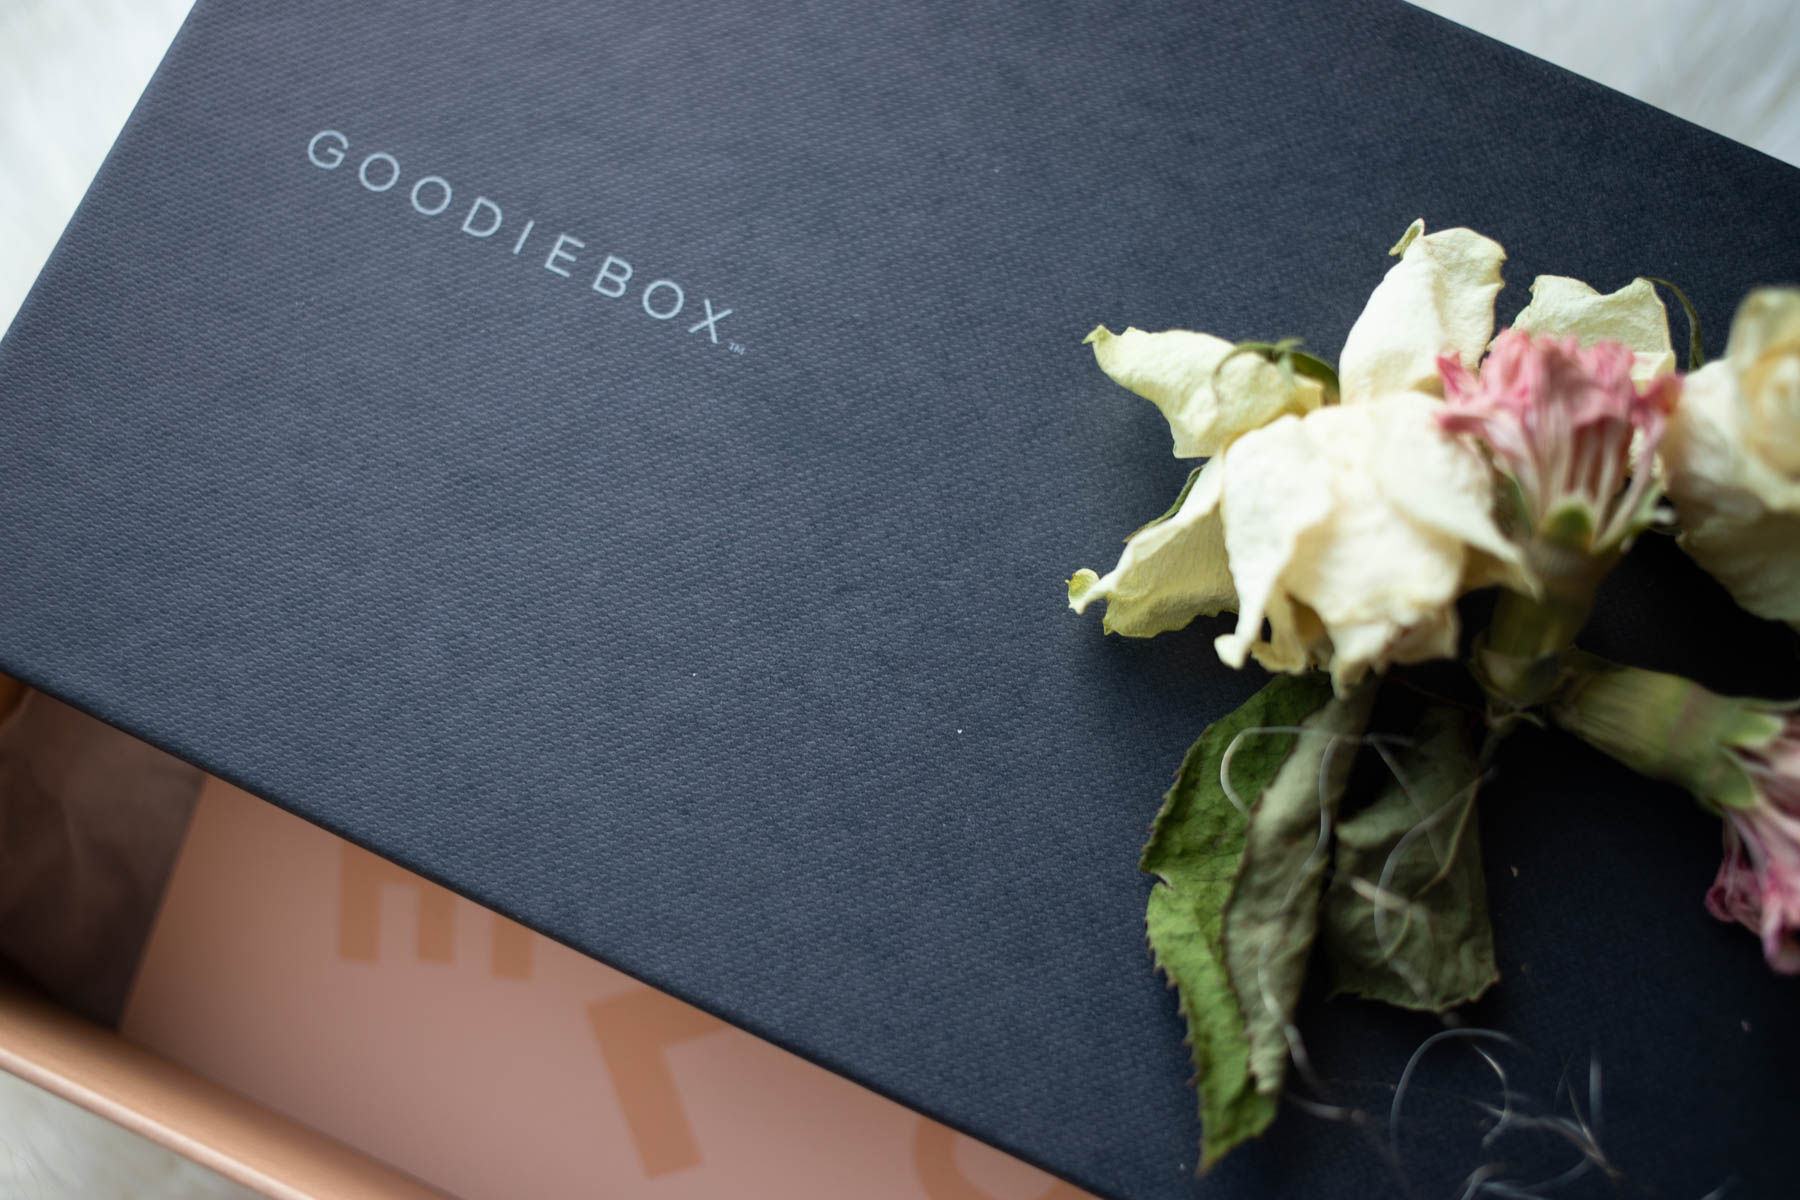 goodiebox unboxing